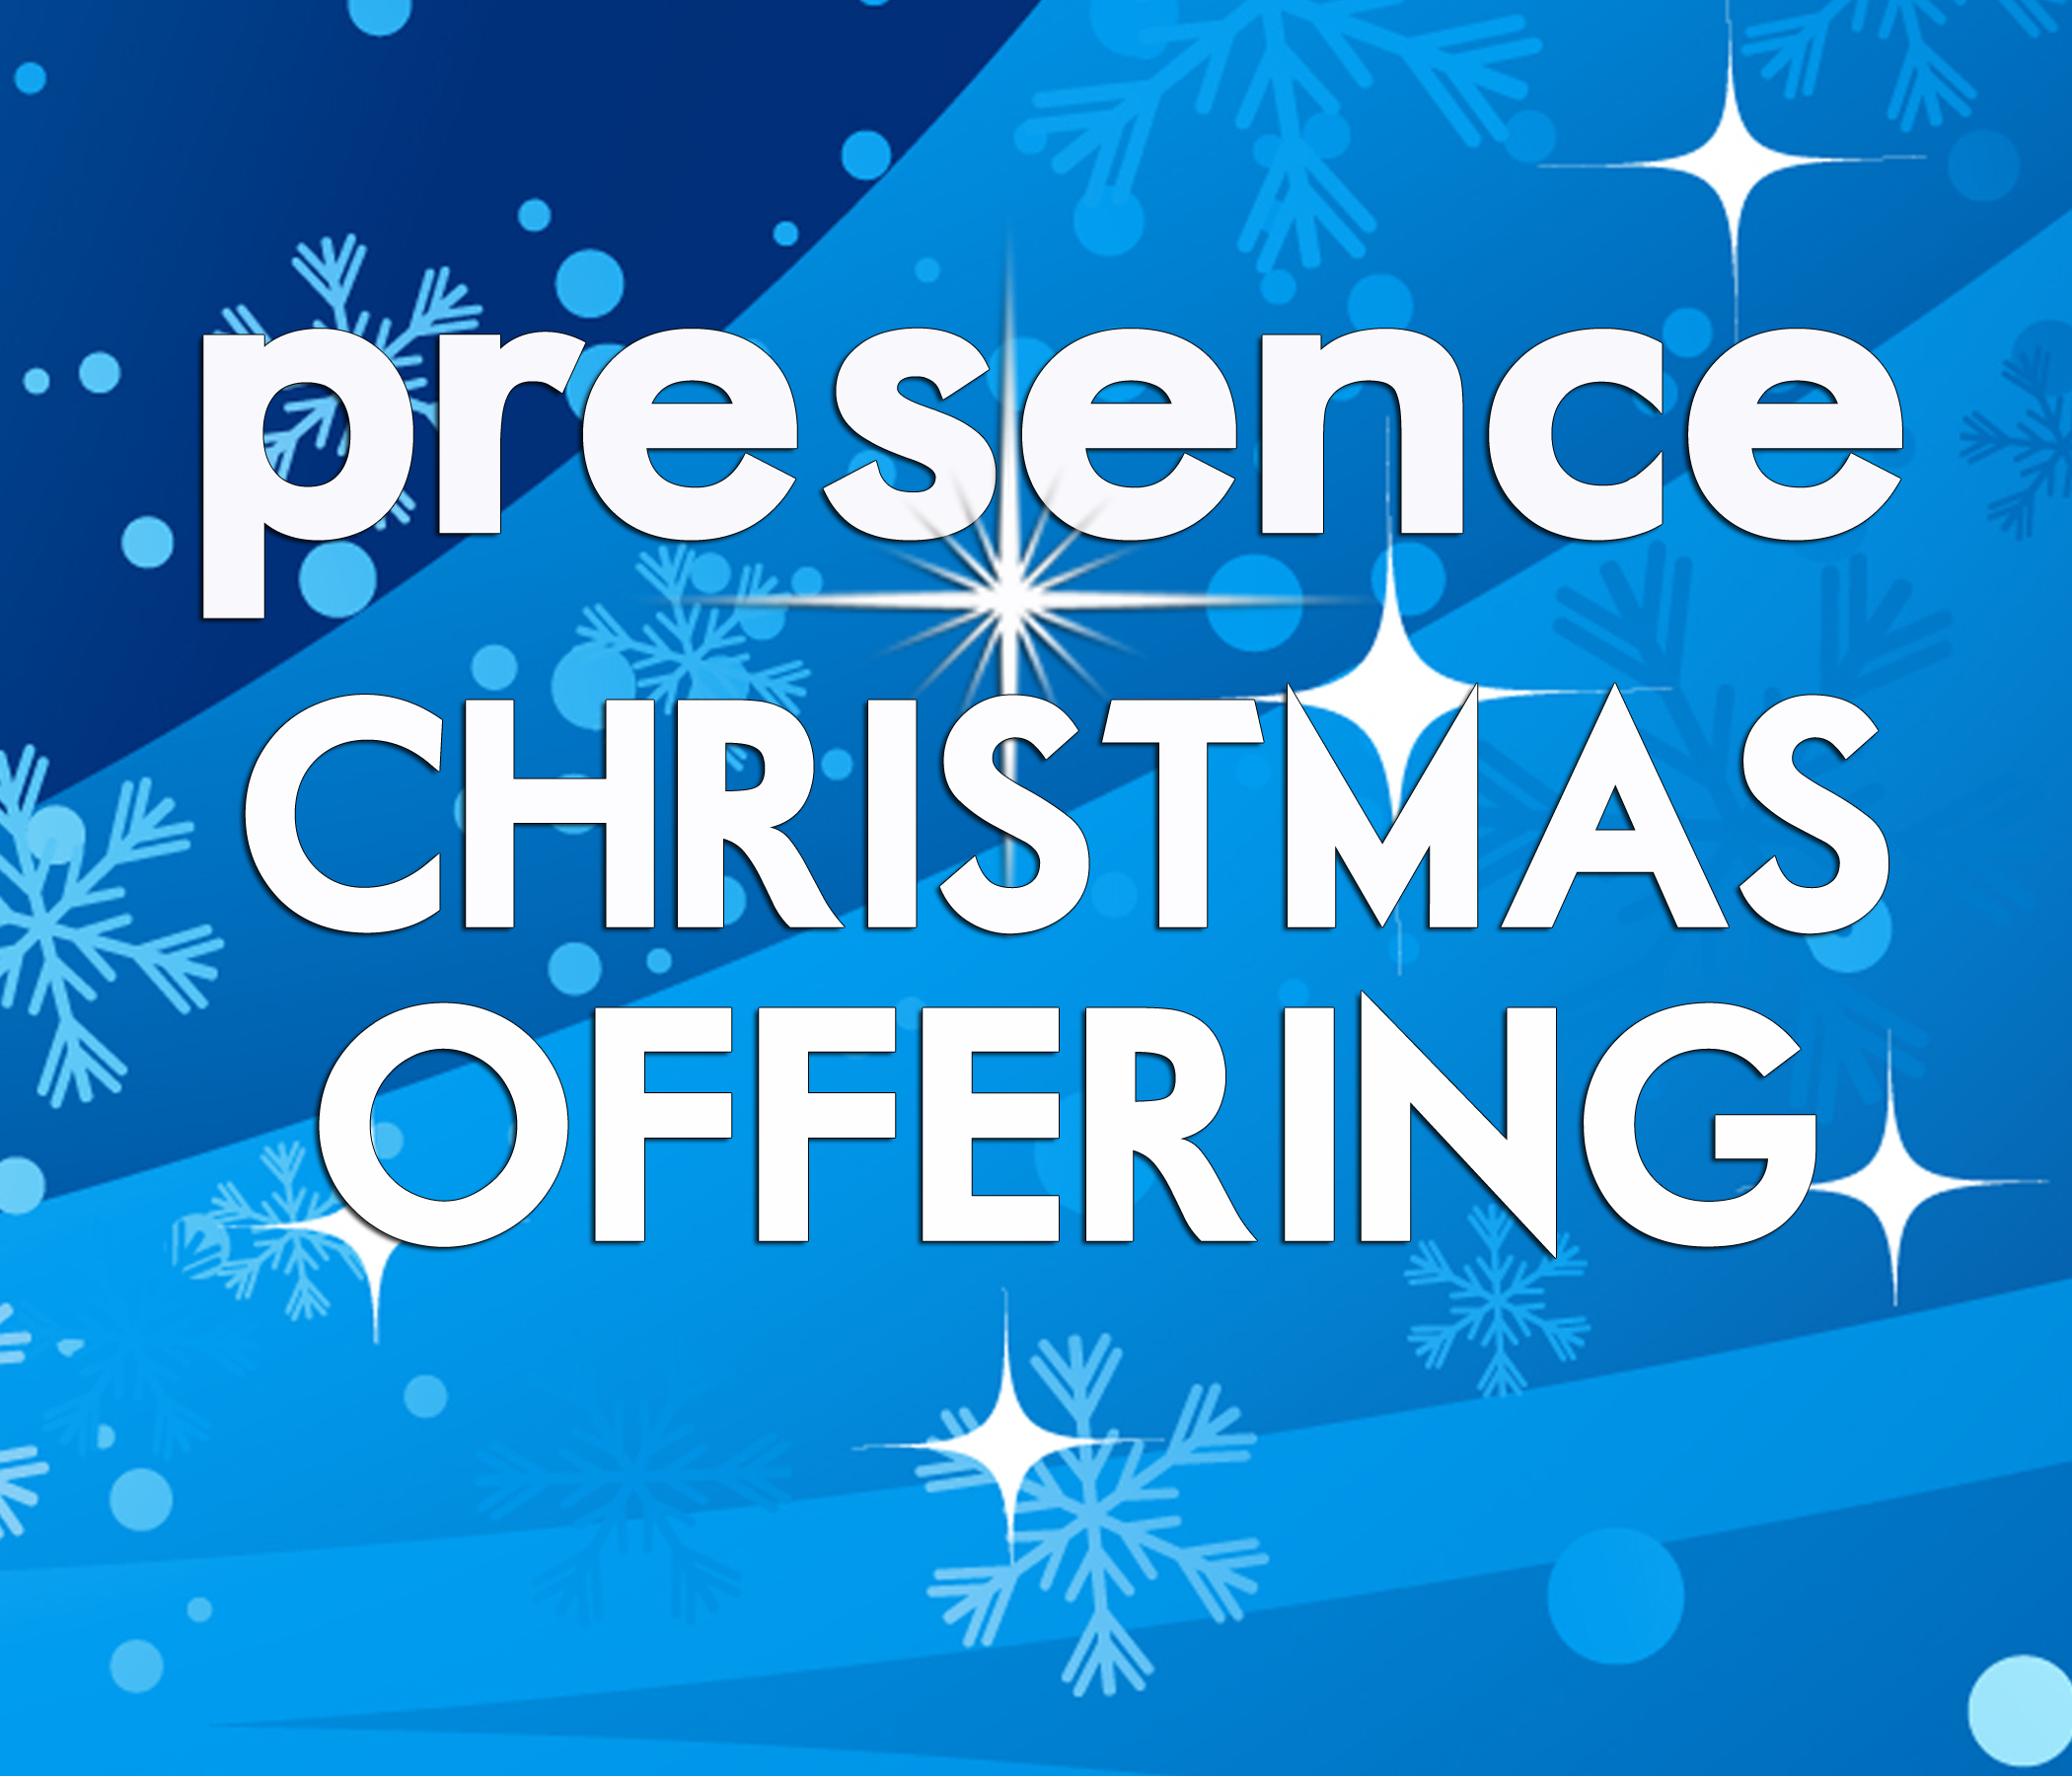 Be the Presence of Jesus through a Christmas Offering